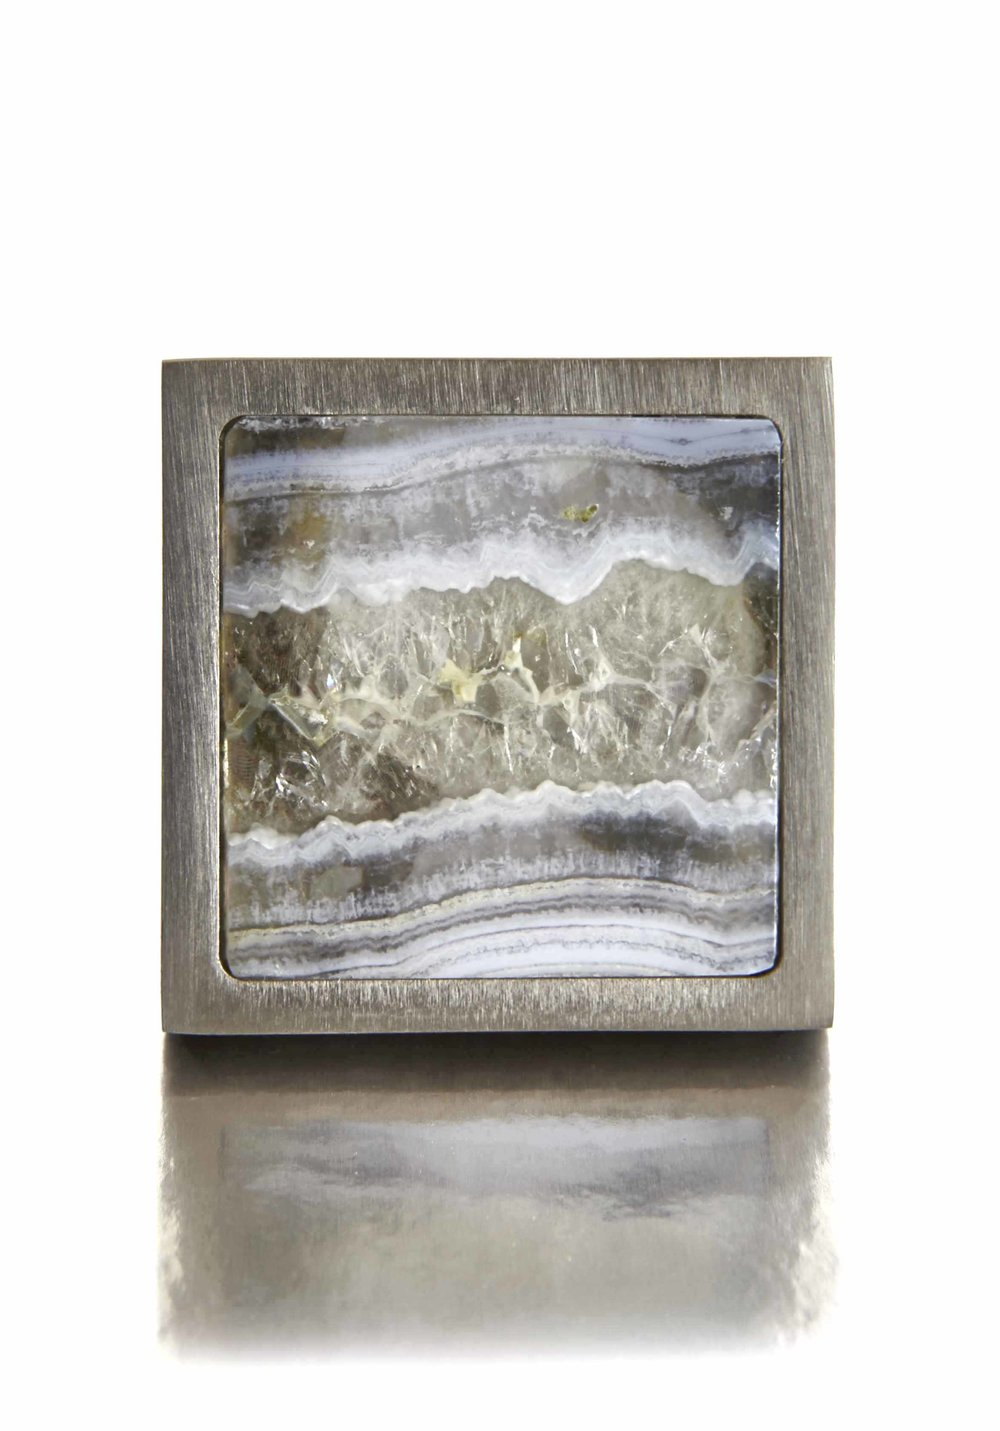 BLUE LACE SQUARE I RARE EARTH   Polished Nickel